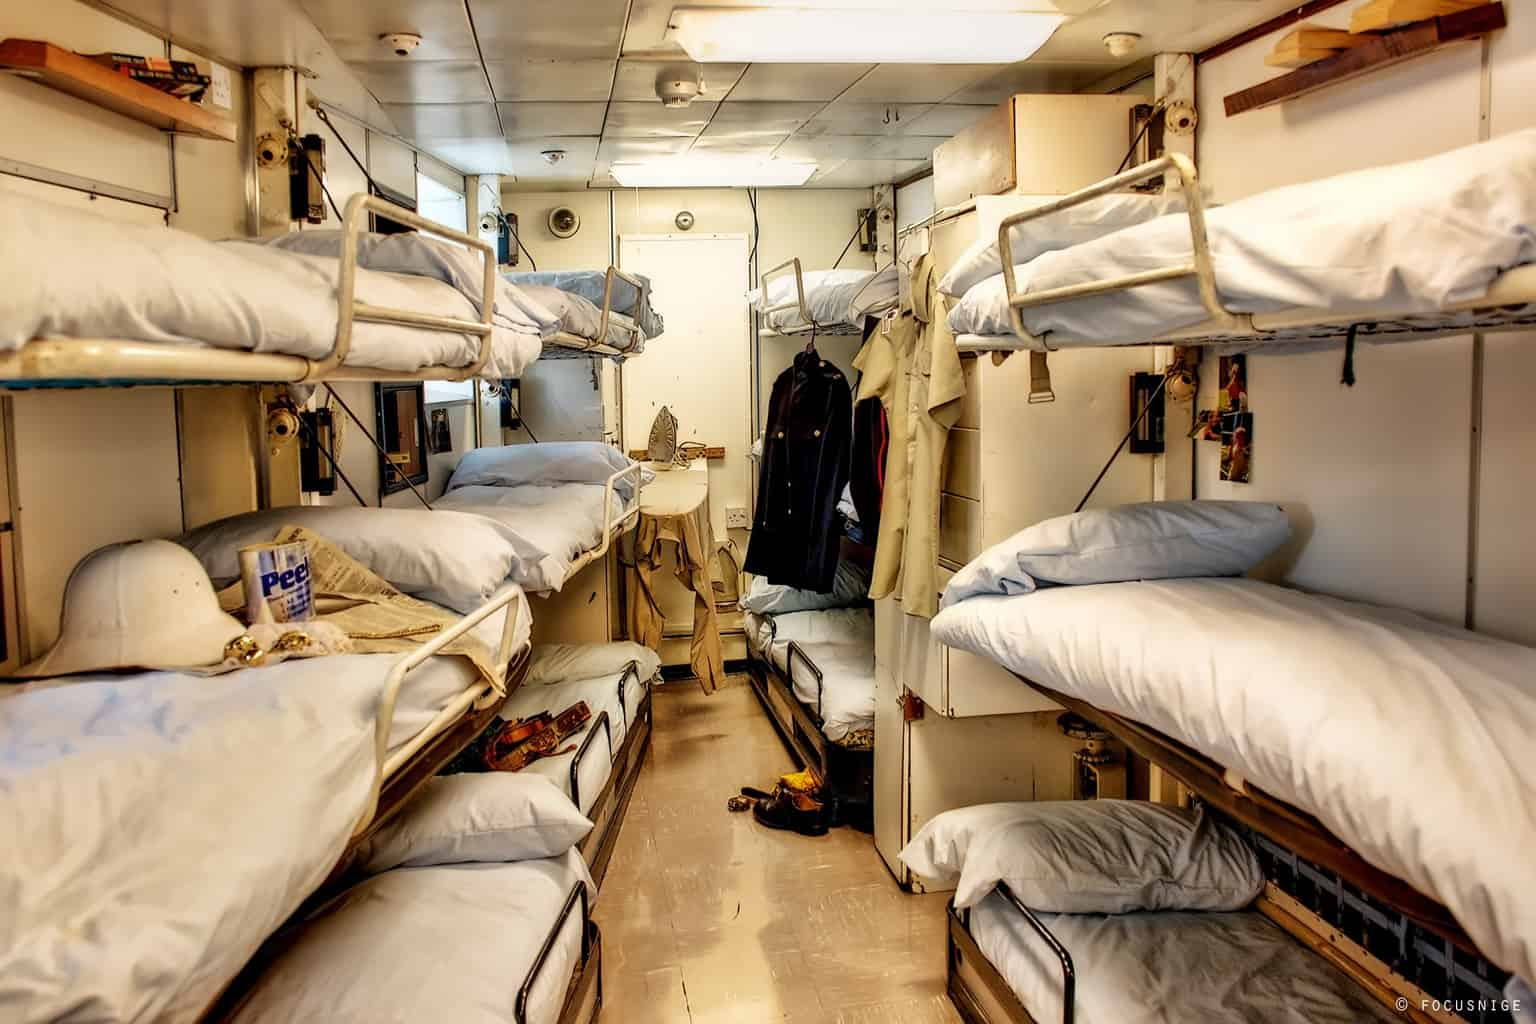 The living quarters inside the Royal Yacht Britannia, one of the most famous Edinburgh landmarks.